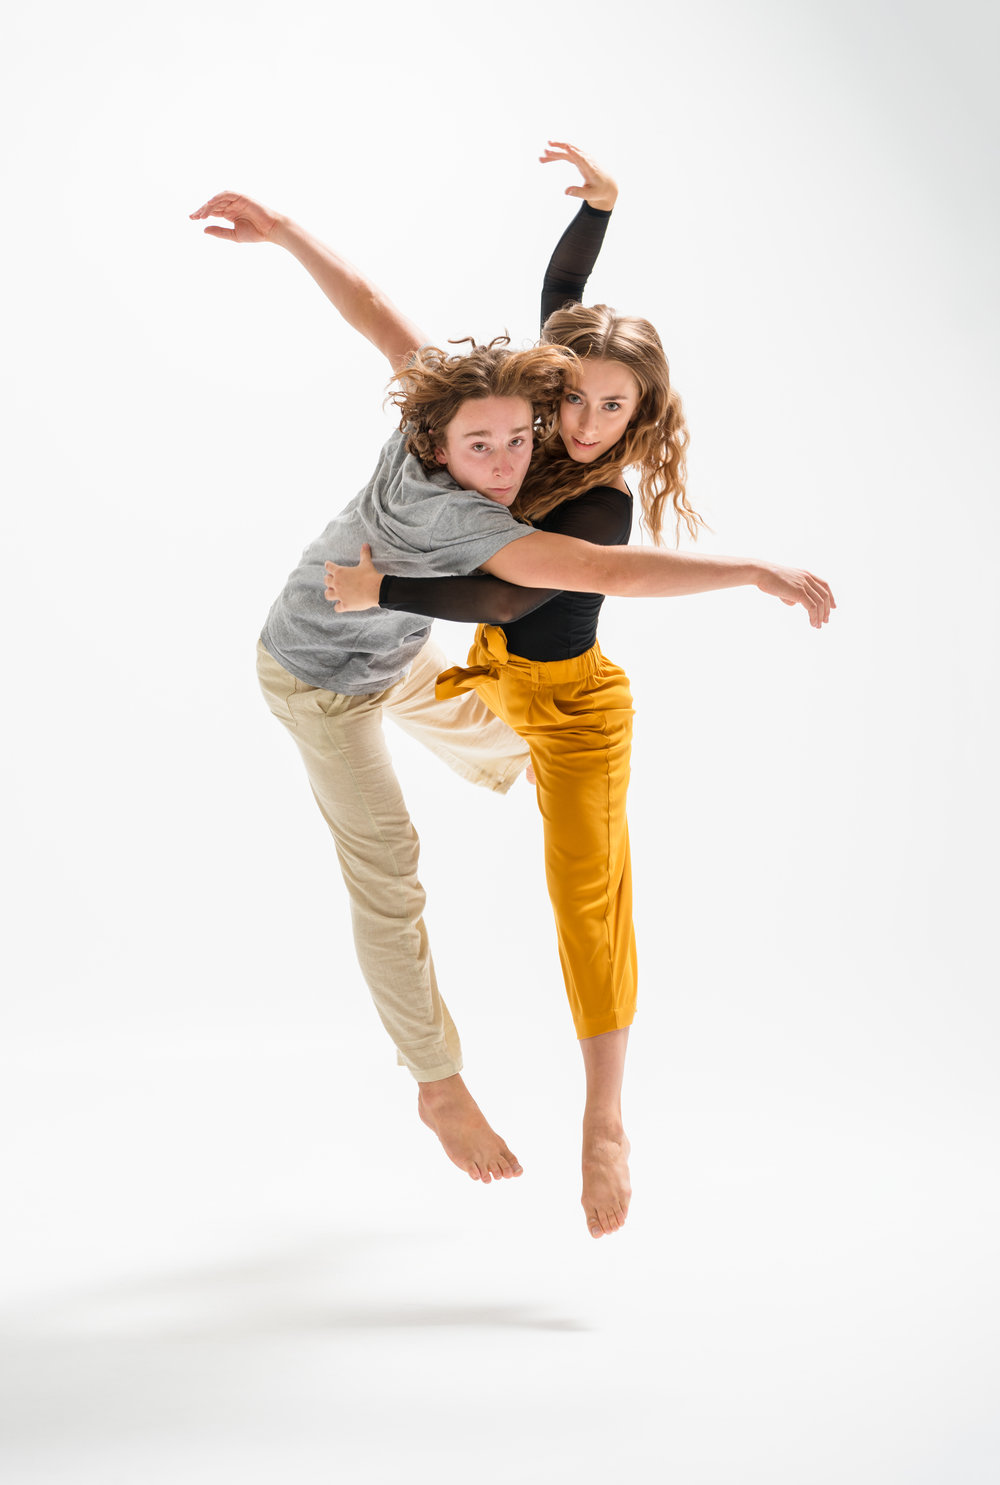 Sebastian Geilings and Olivia Foley photo by Stephen A 'Court